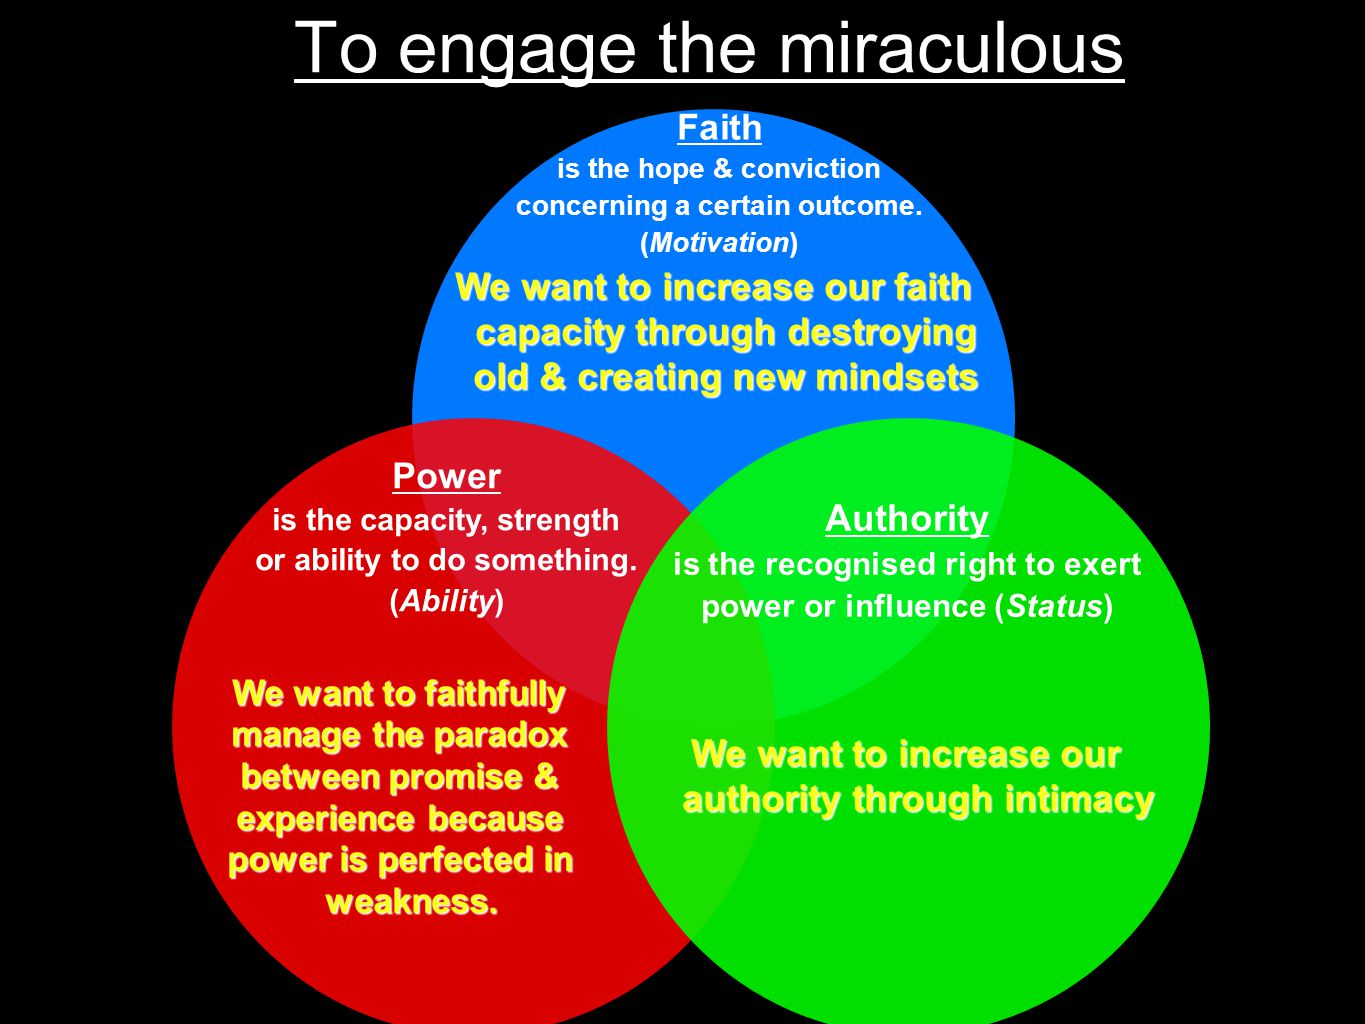 To engage the miraculous